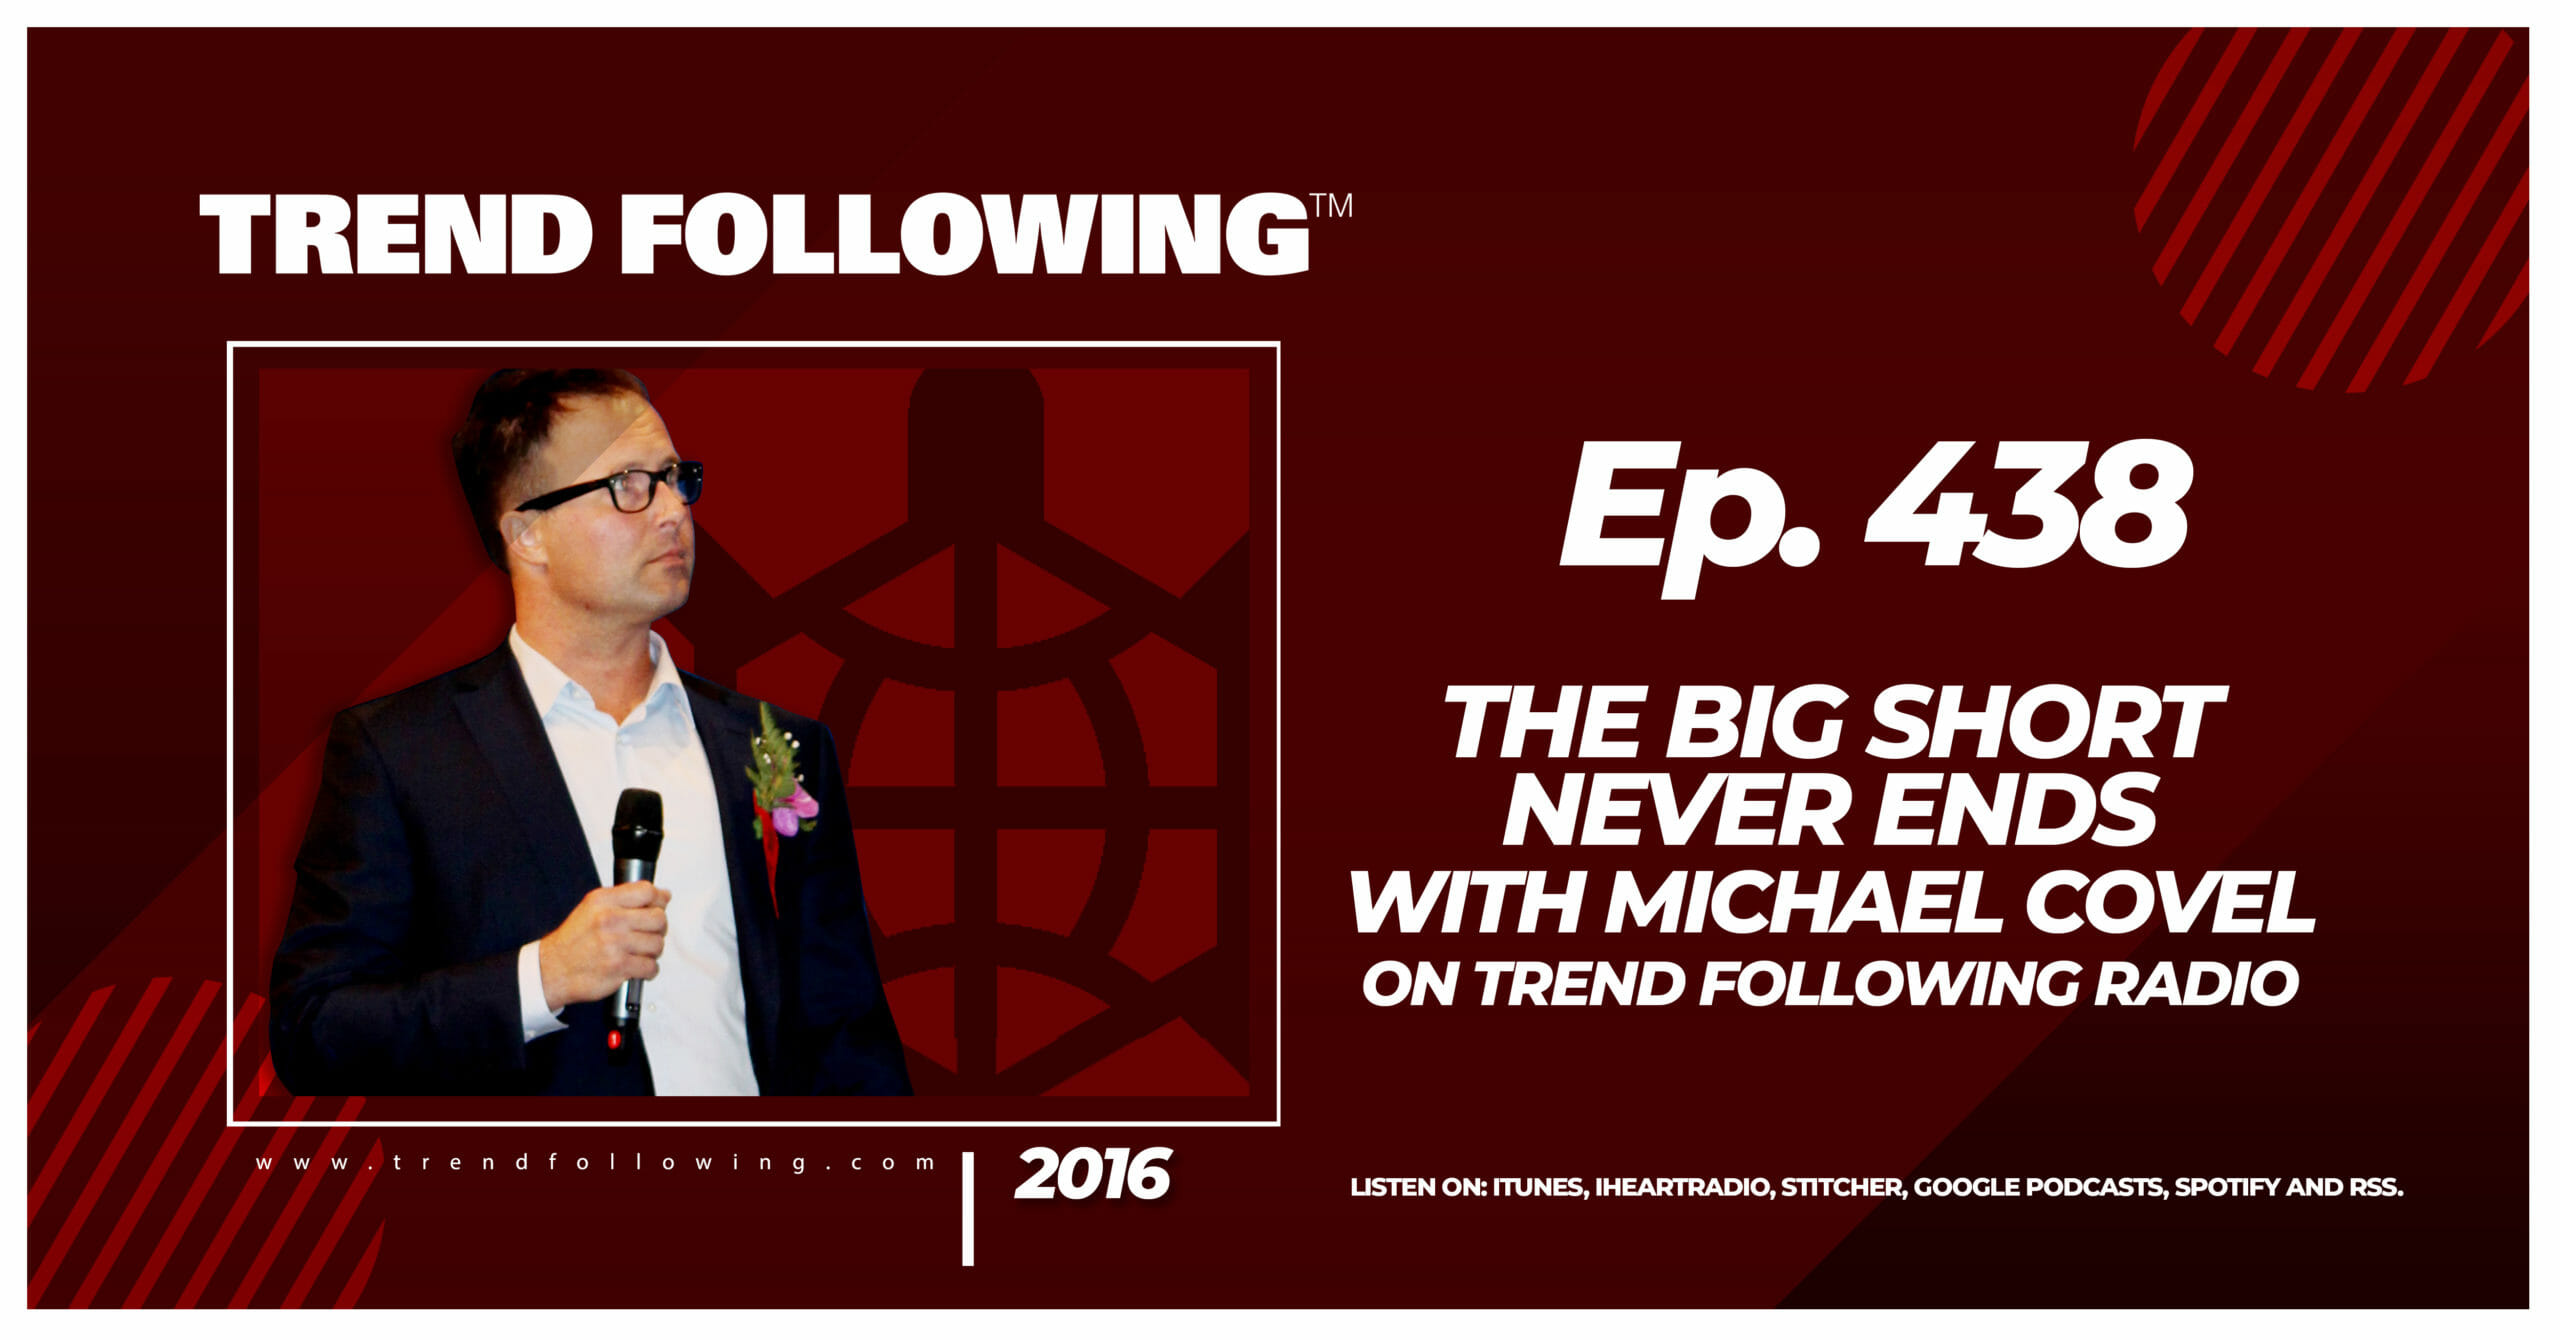 The Big Short Never Ends with Michael Covel on Trend Following Radio